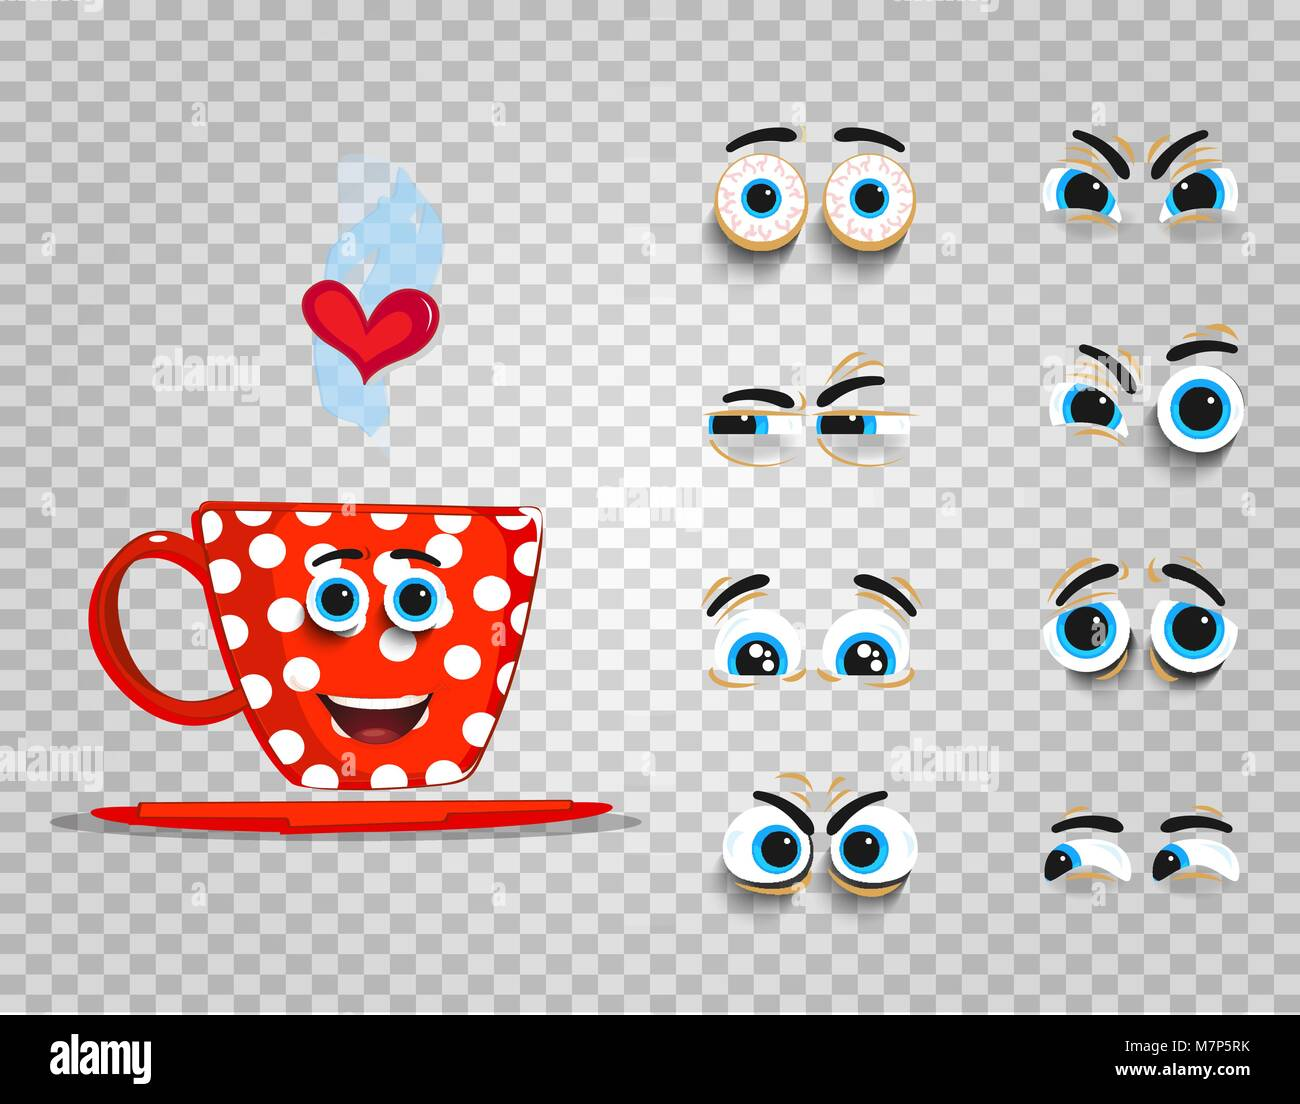 Cute Emoji Set Of Red Cup With Changeable Eyes Collection Doodle